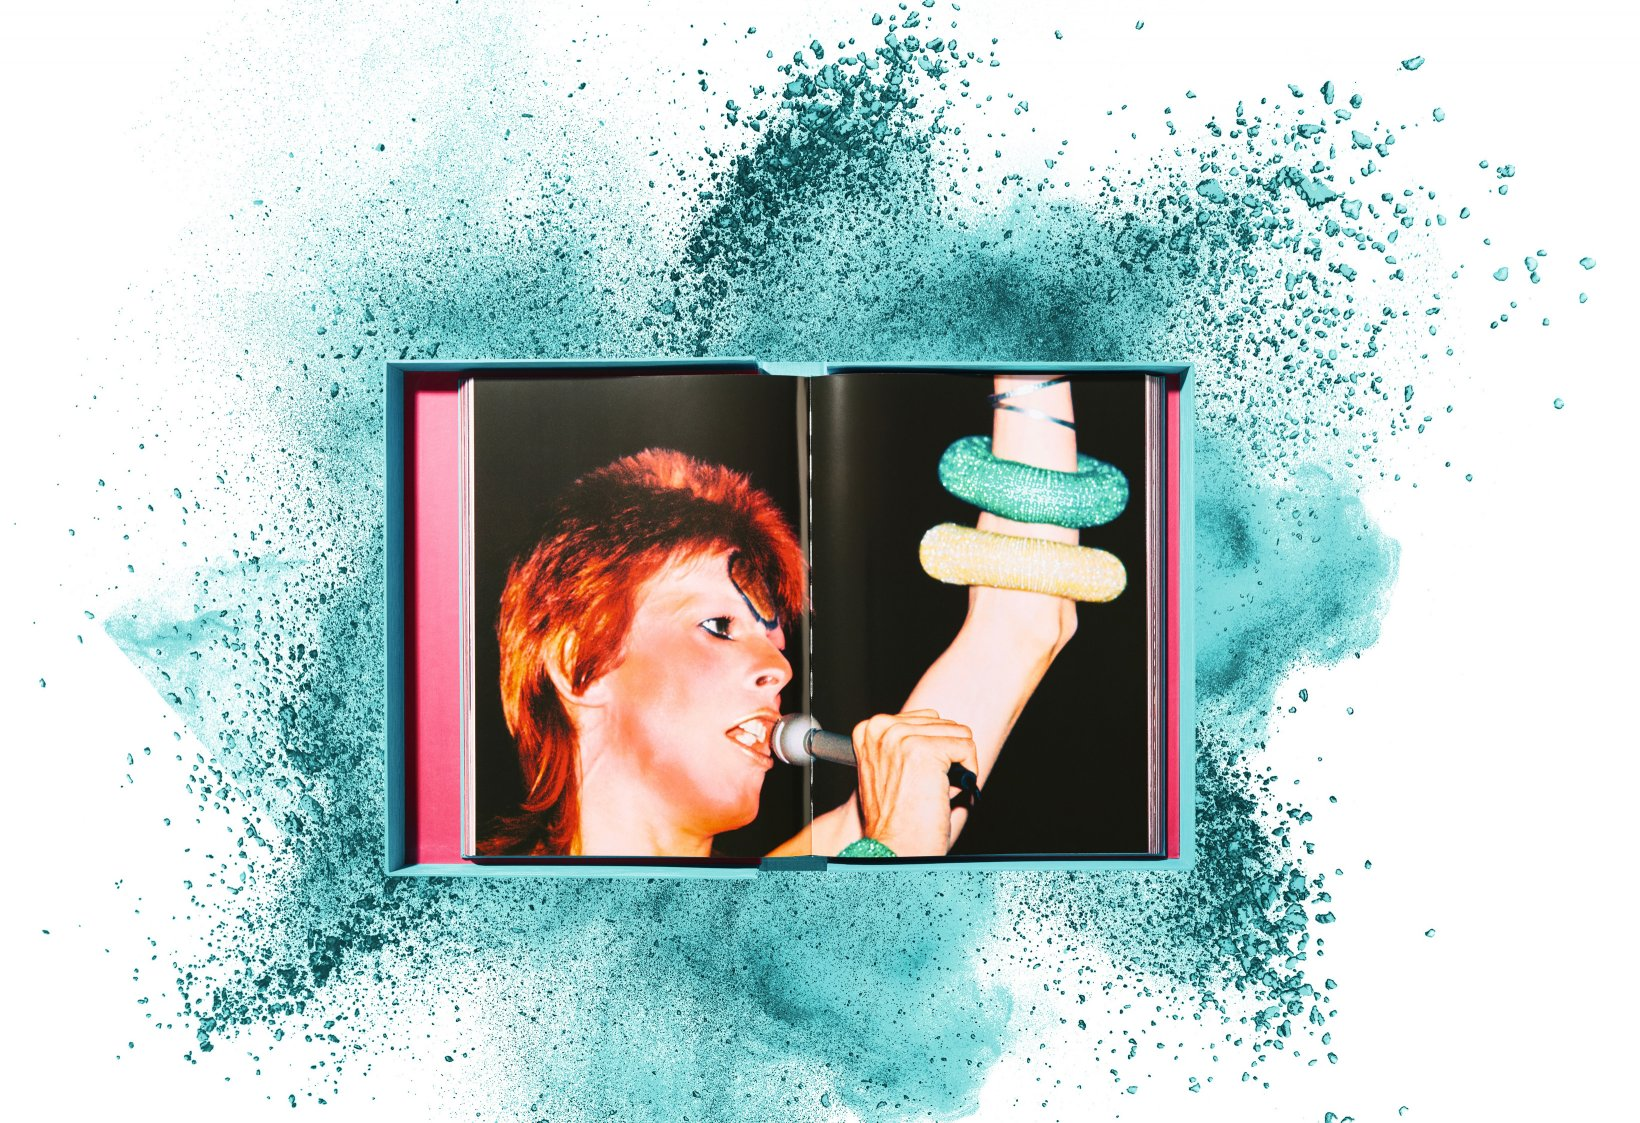 rock_david_bowie_ce_image019_03136_1512161615_id_1018534